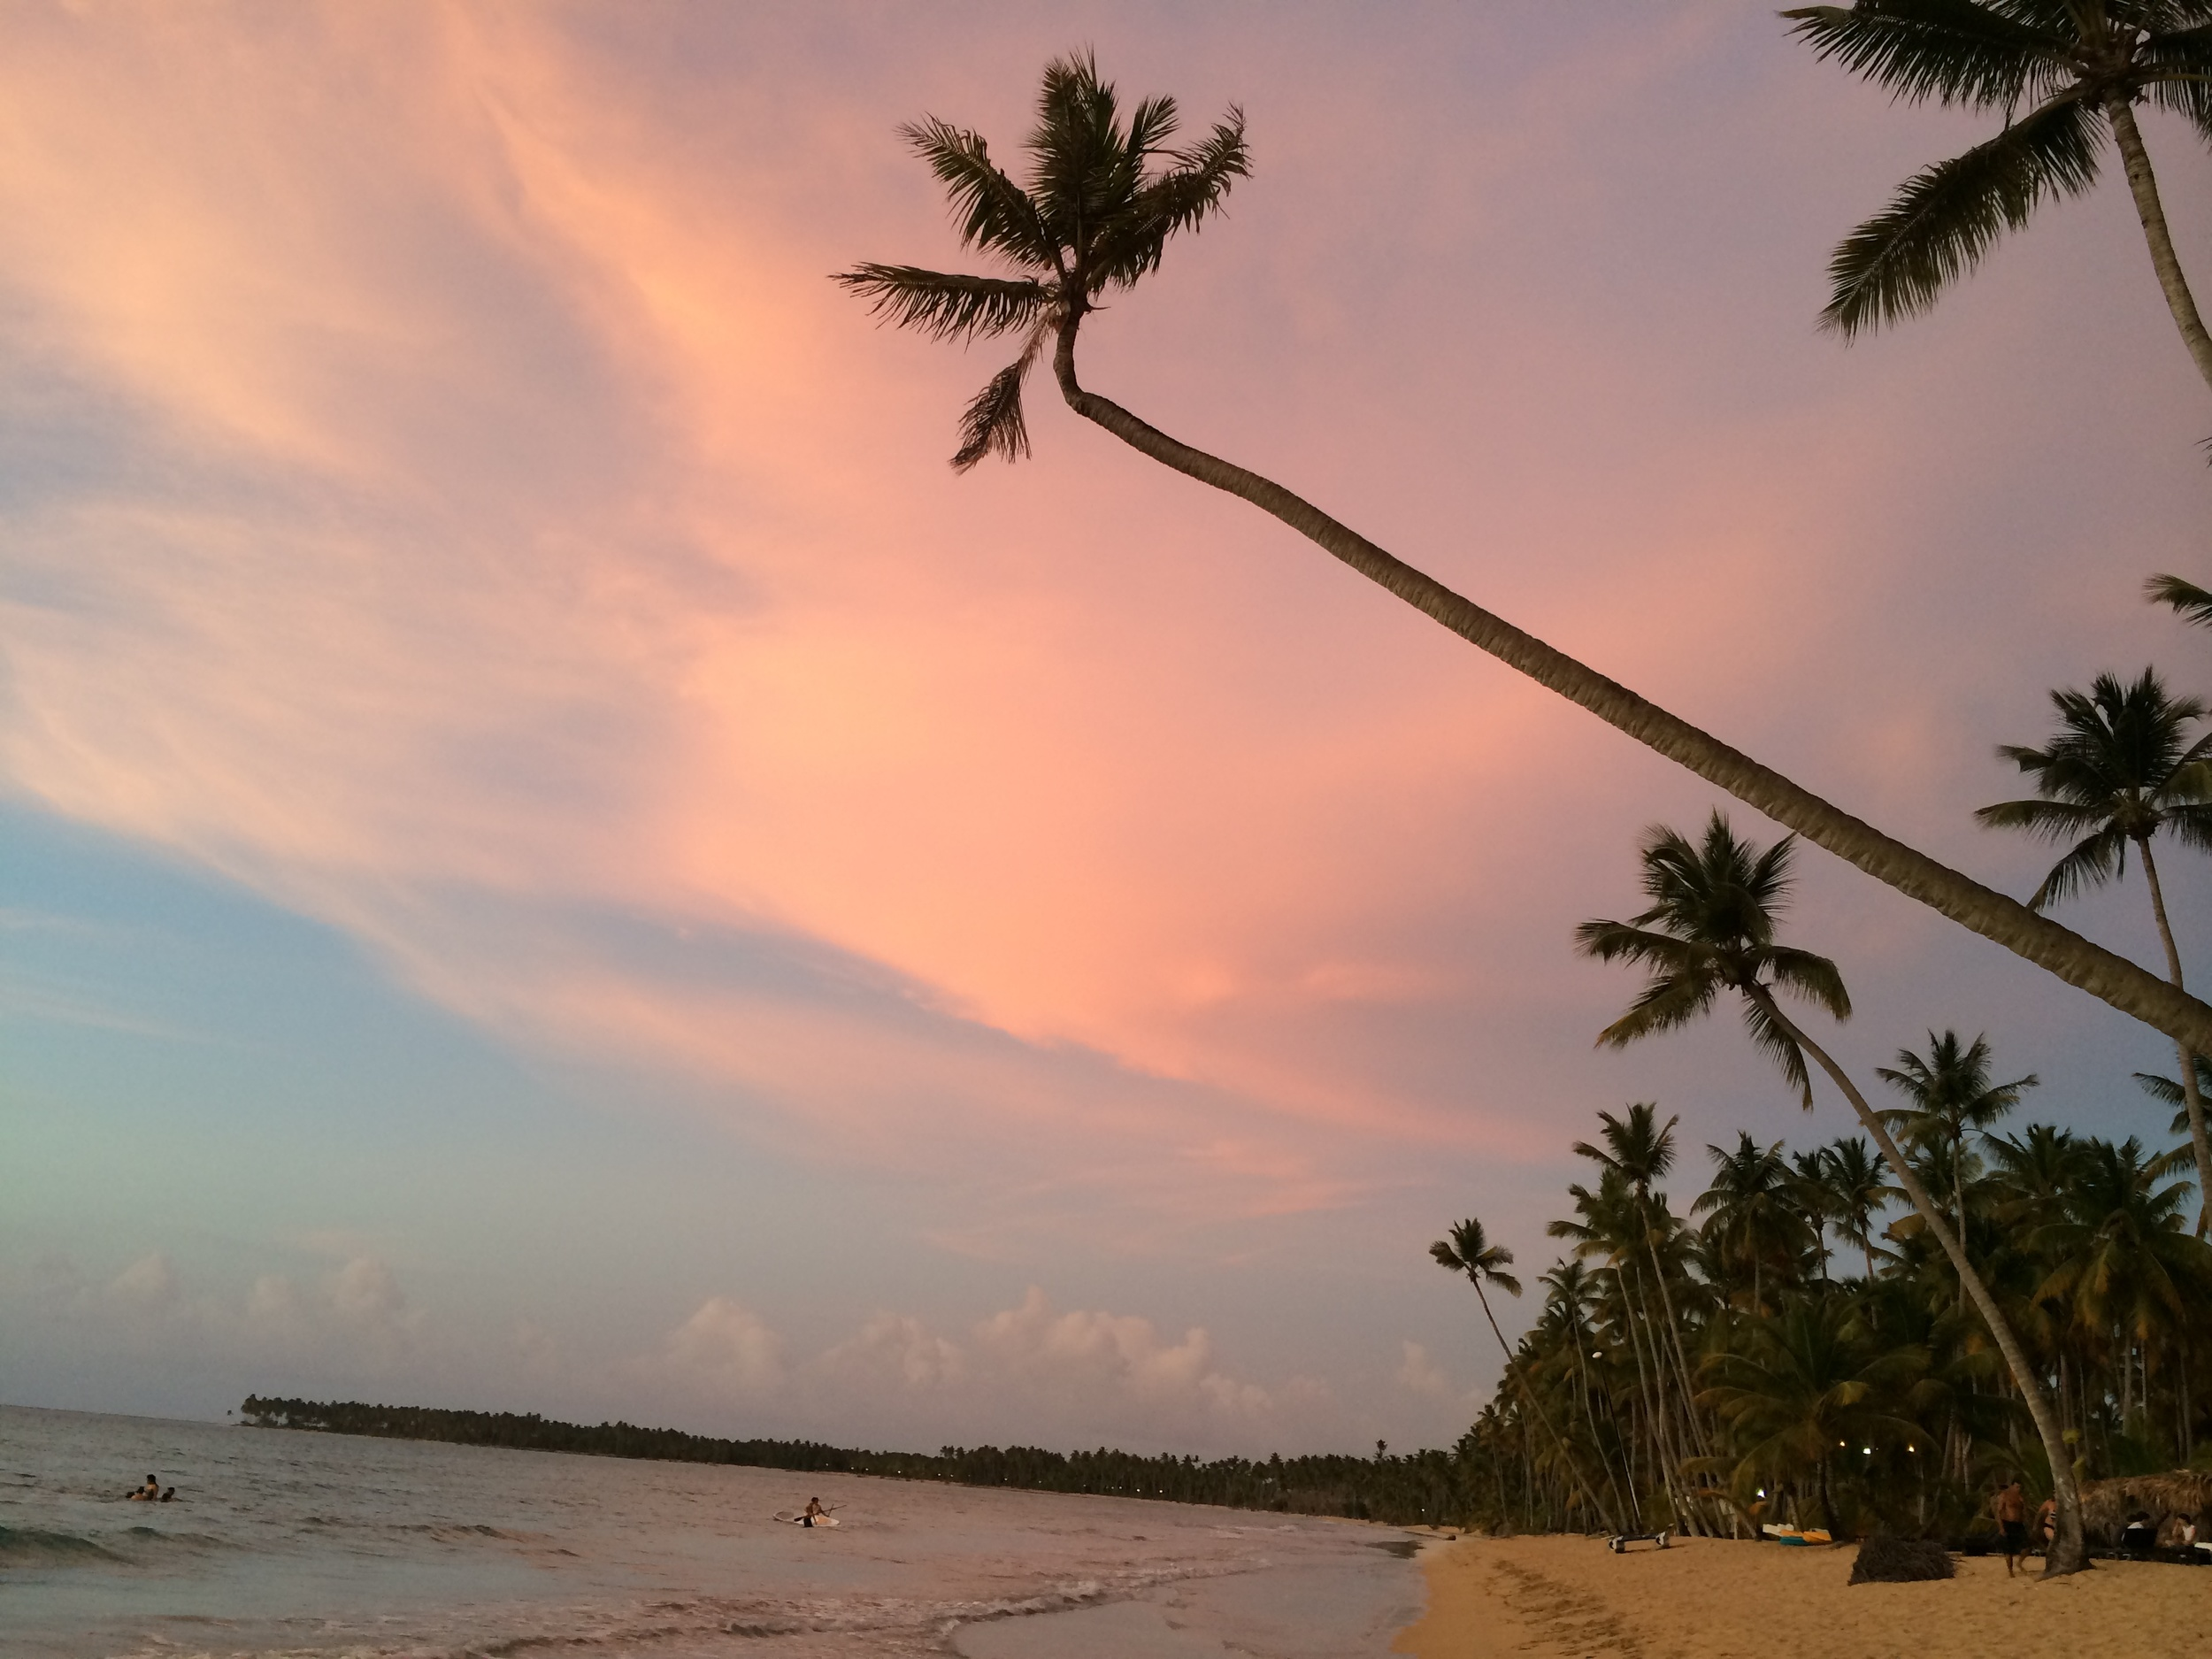 A beautiful sunset in samana, dominican republic